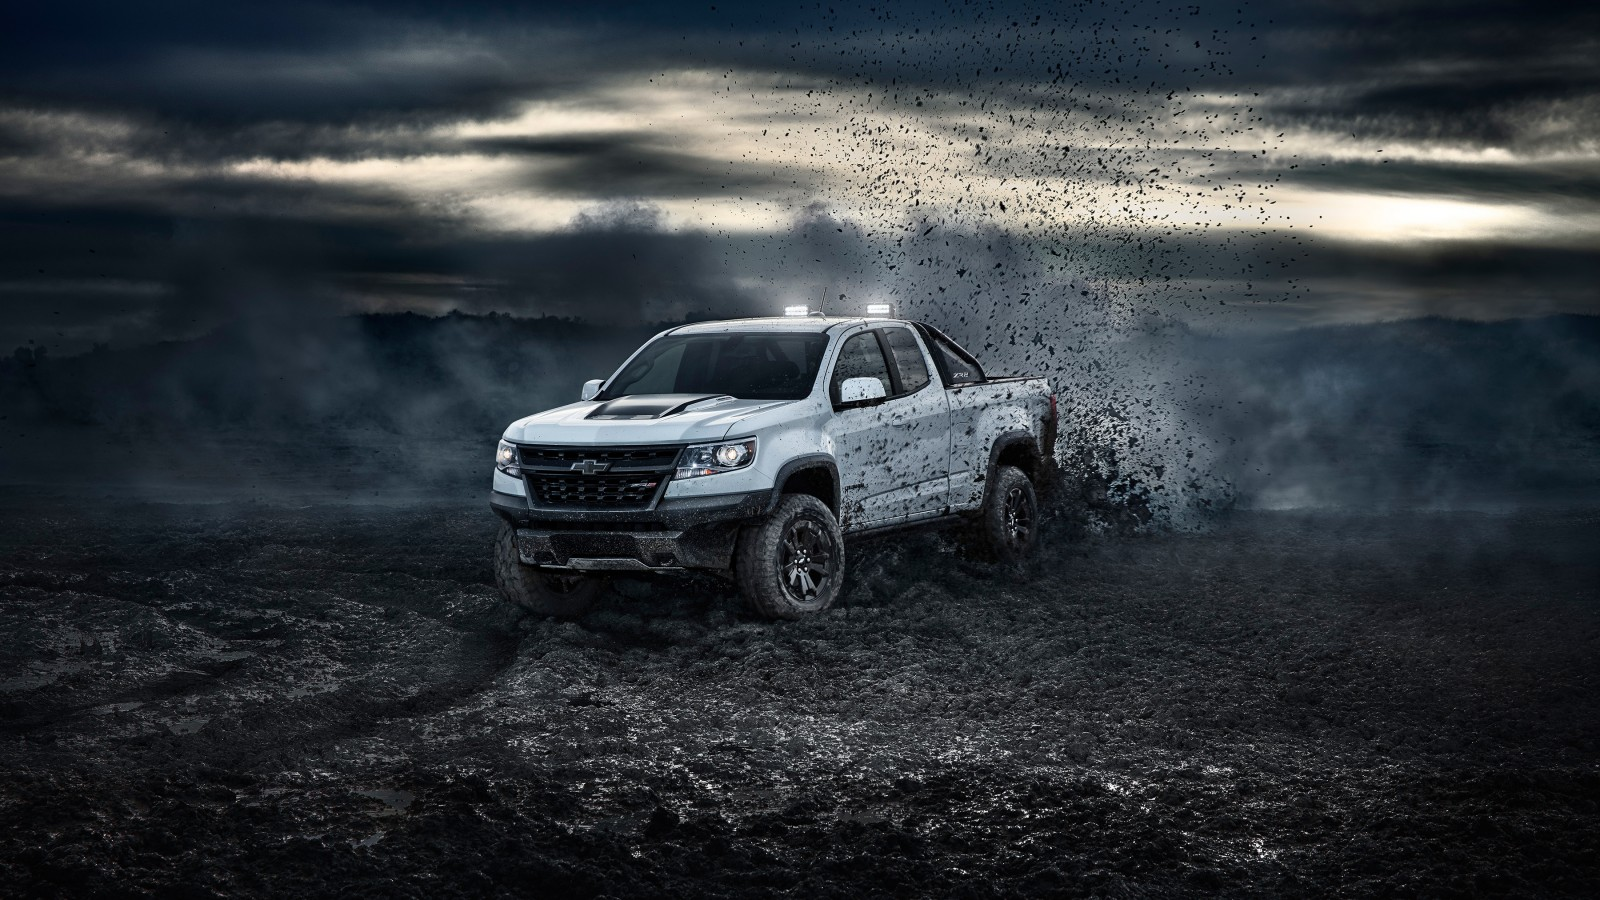 2017 Chevrolet Colorado Zr2 Crew Cab Wallpaper Hd Car Wallpapers Id 8888